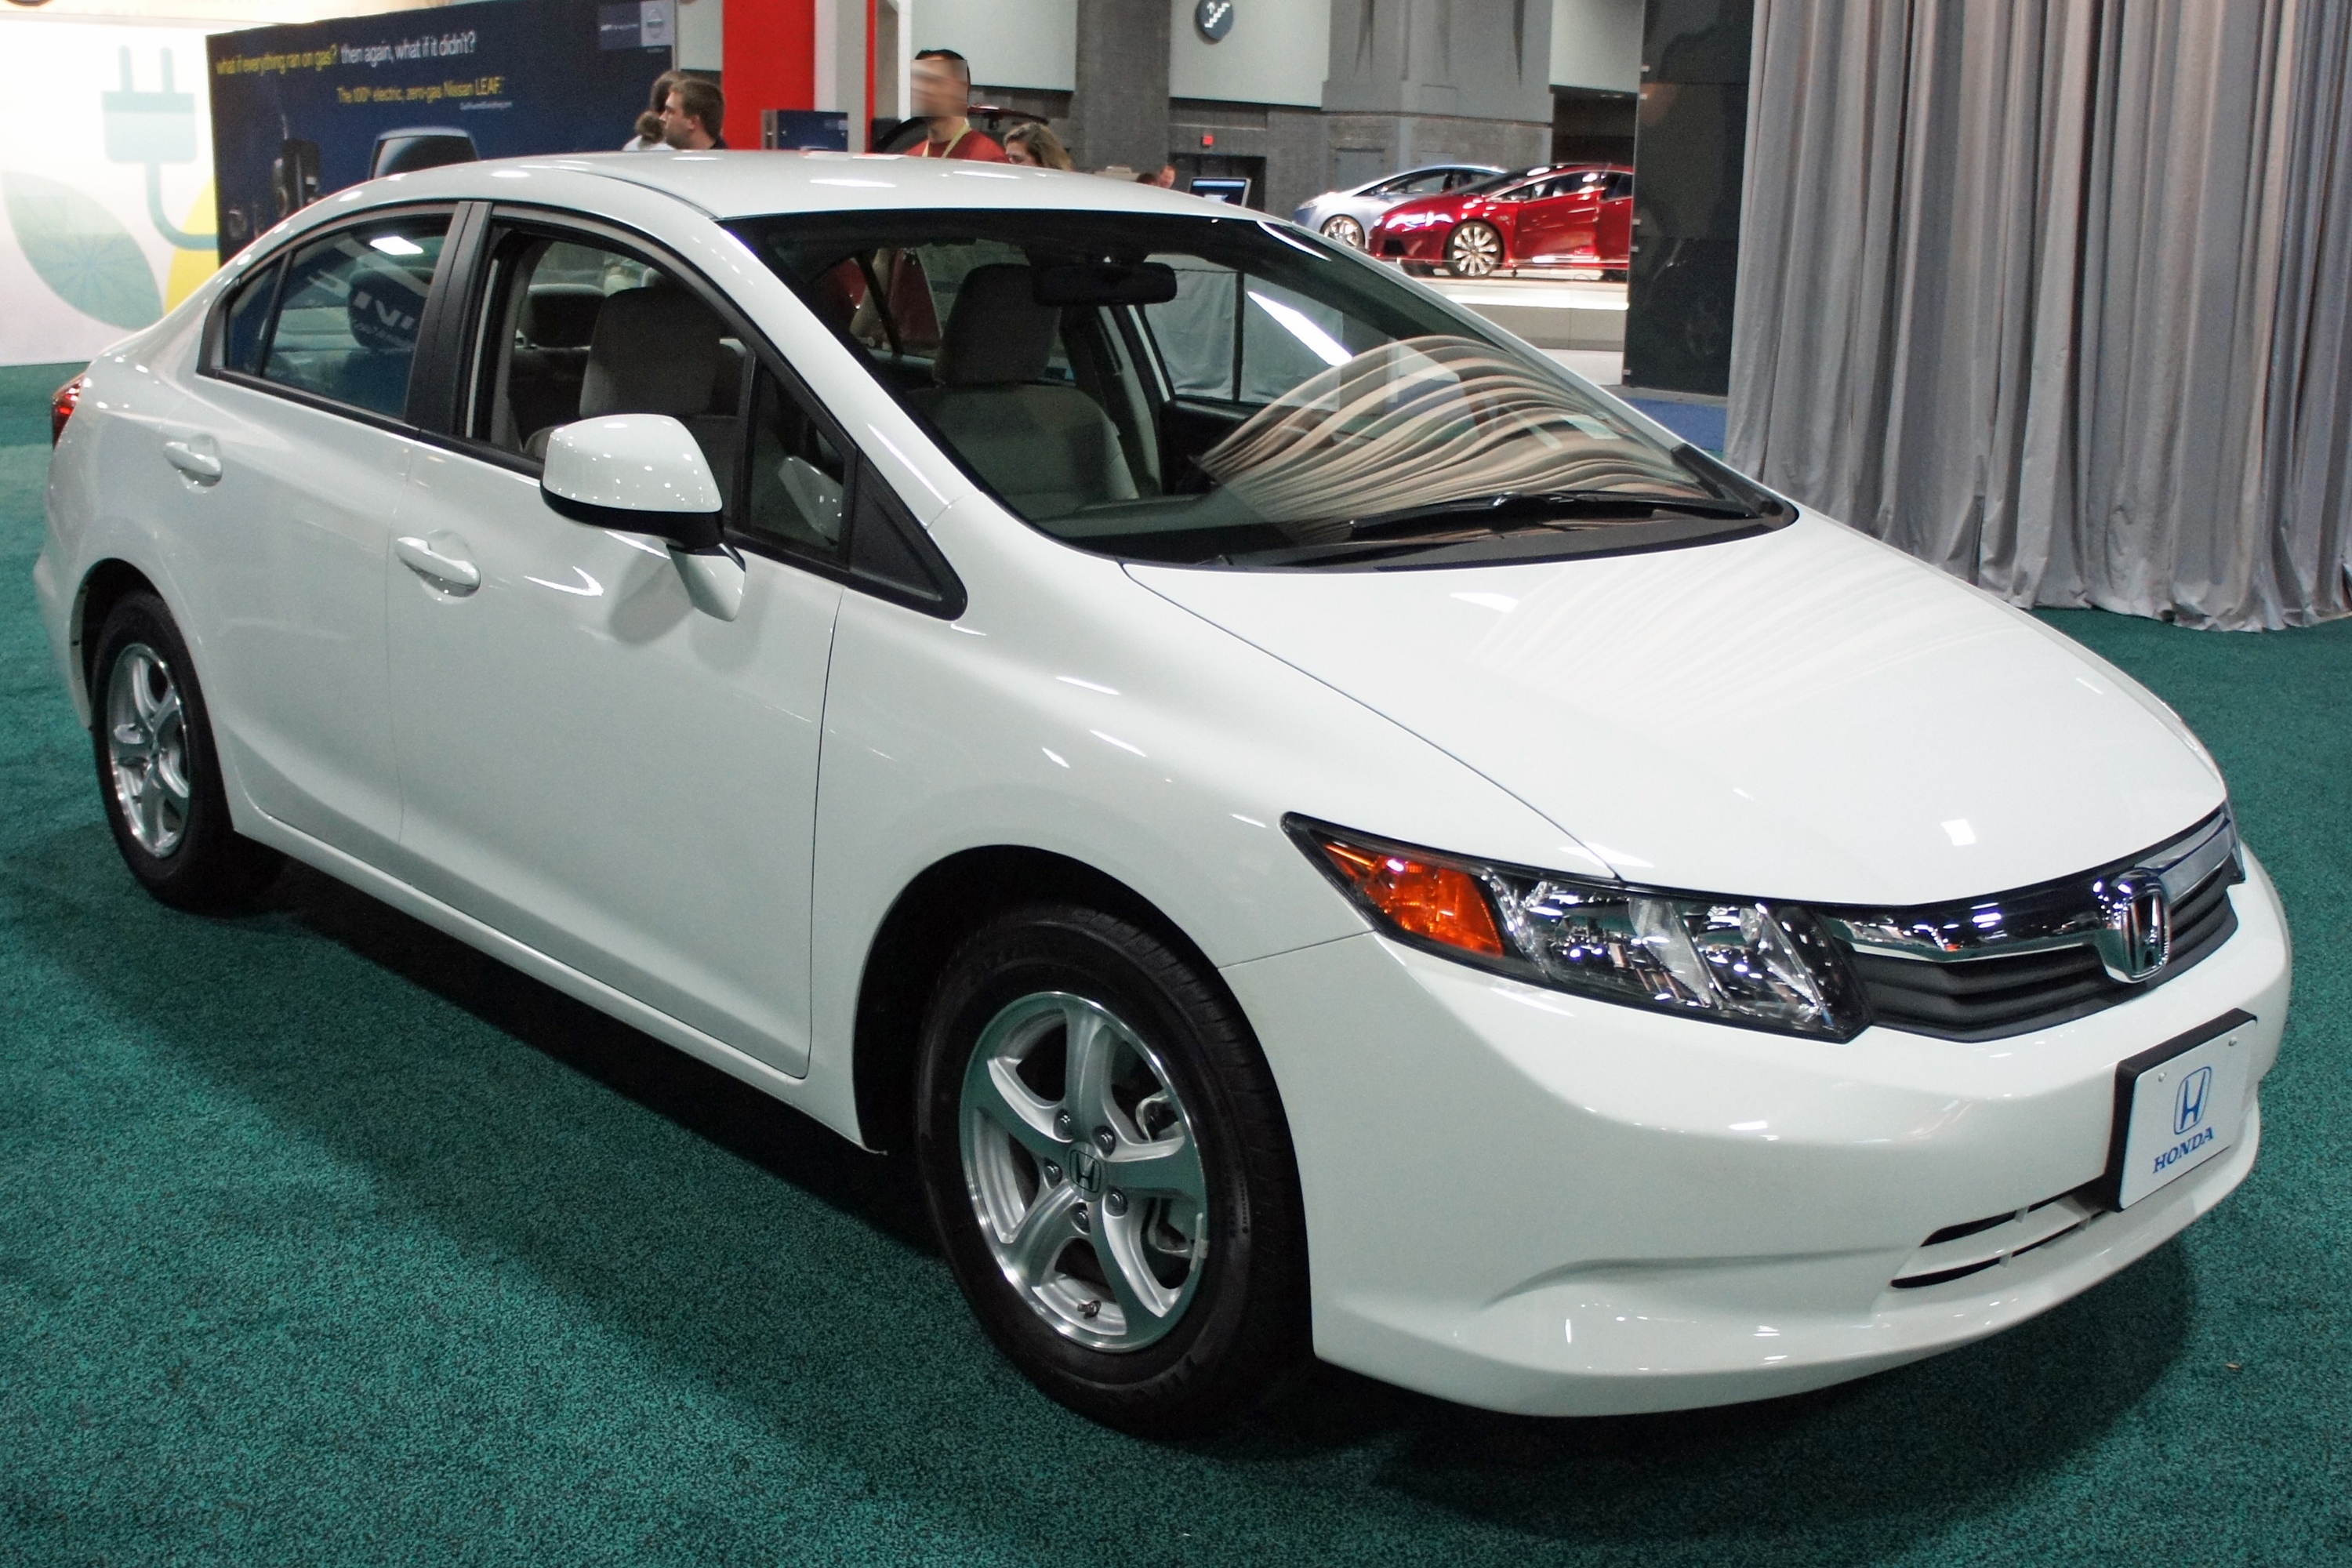 File 2012 Honda Civic Gx Cng Was 2012 0825 Jpg Wikimedia